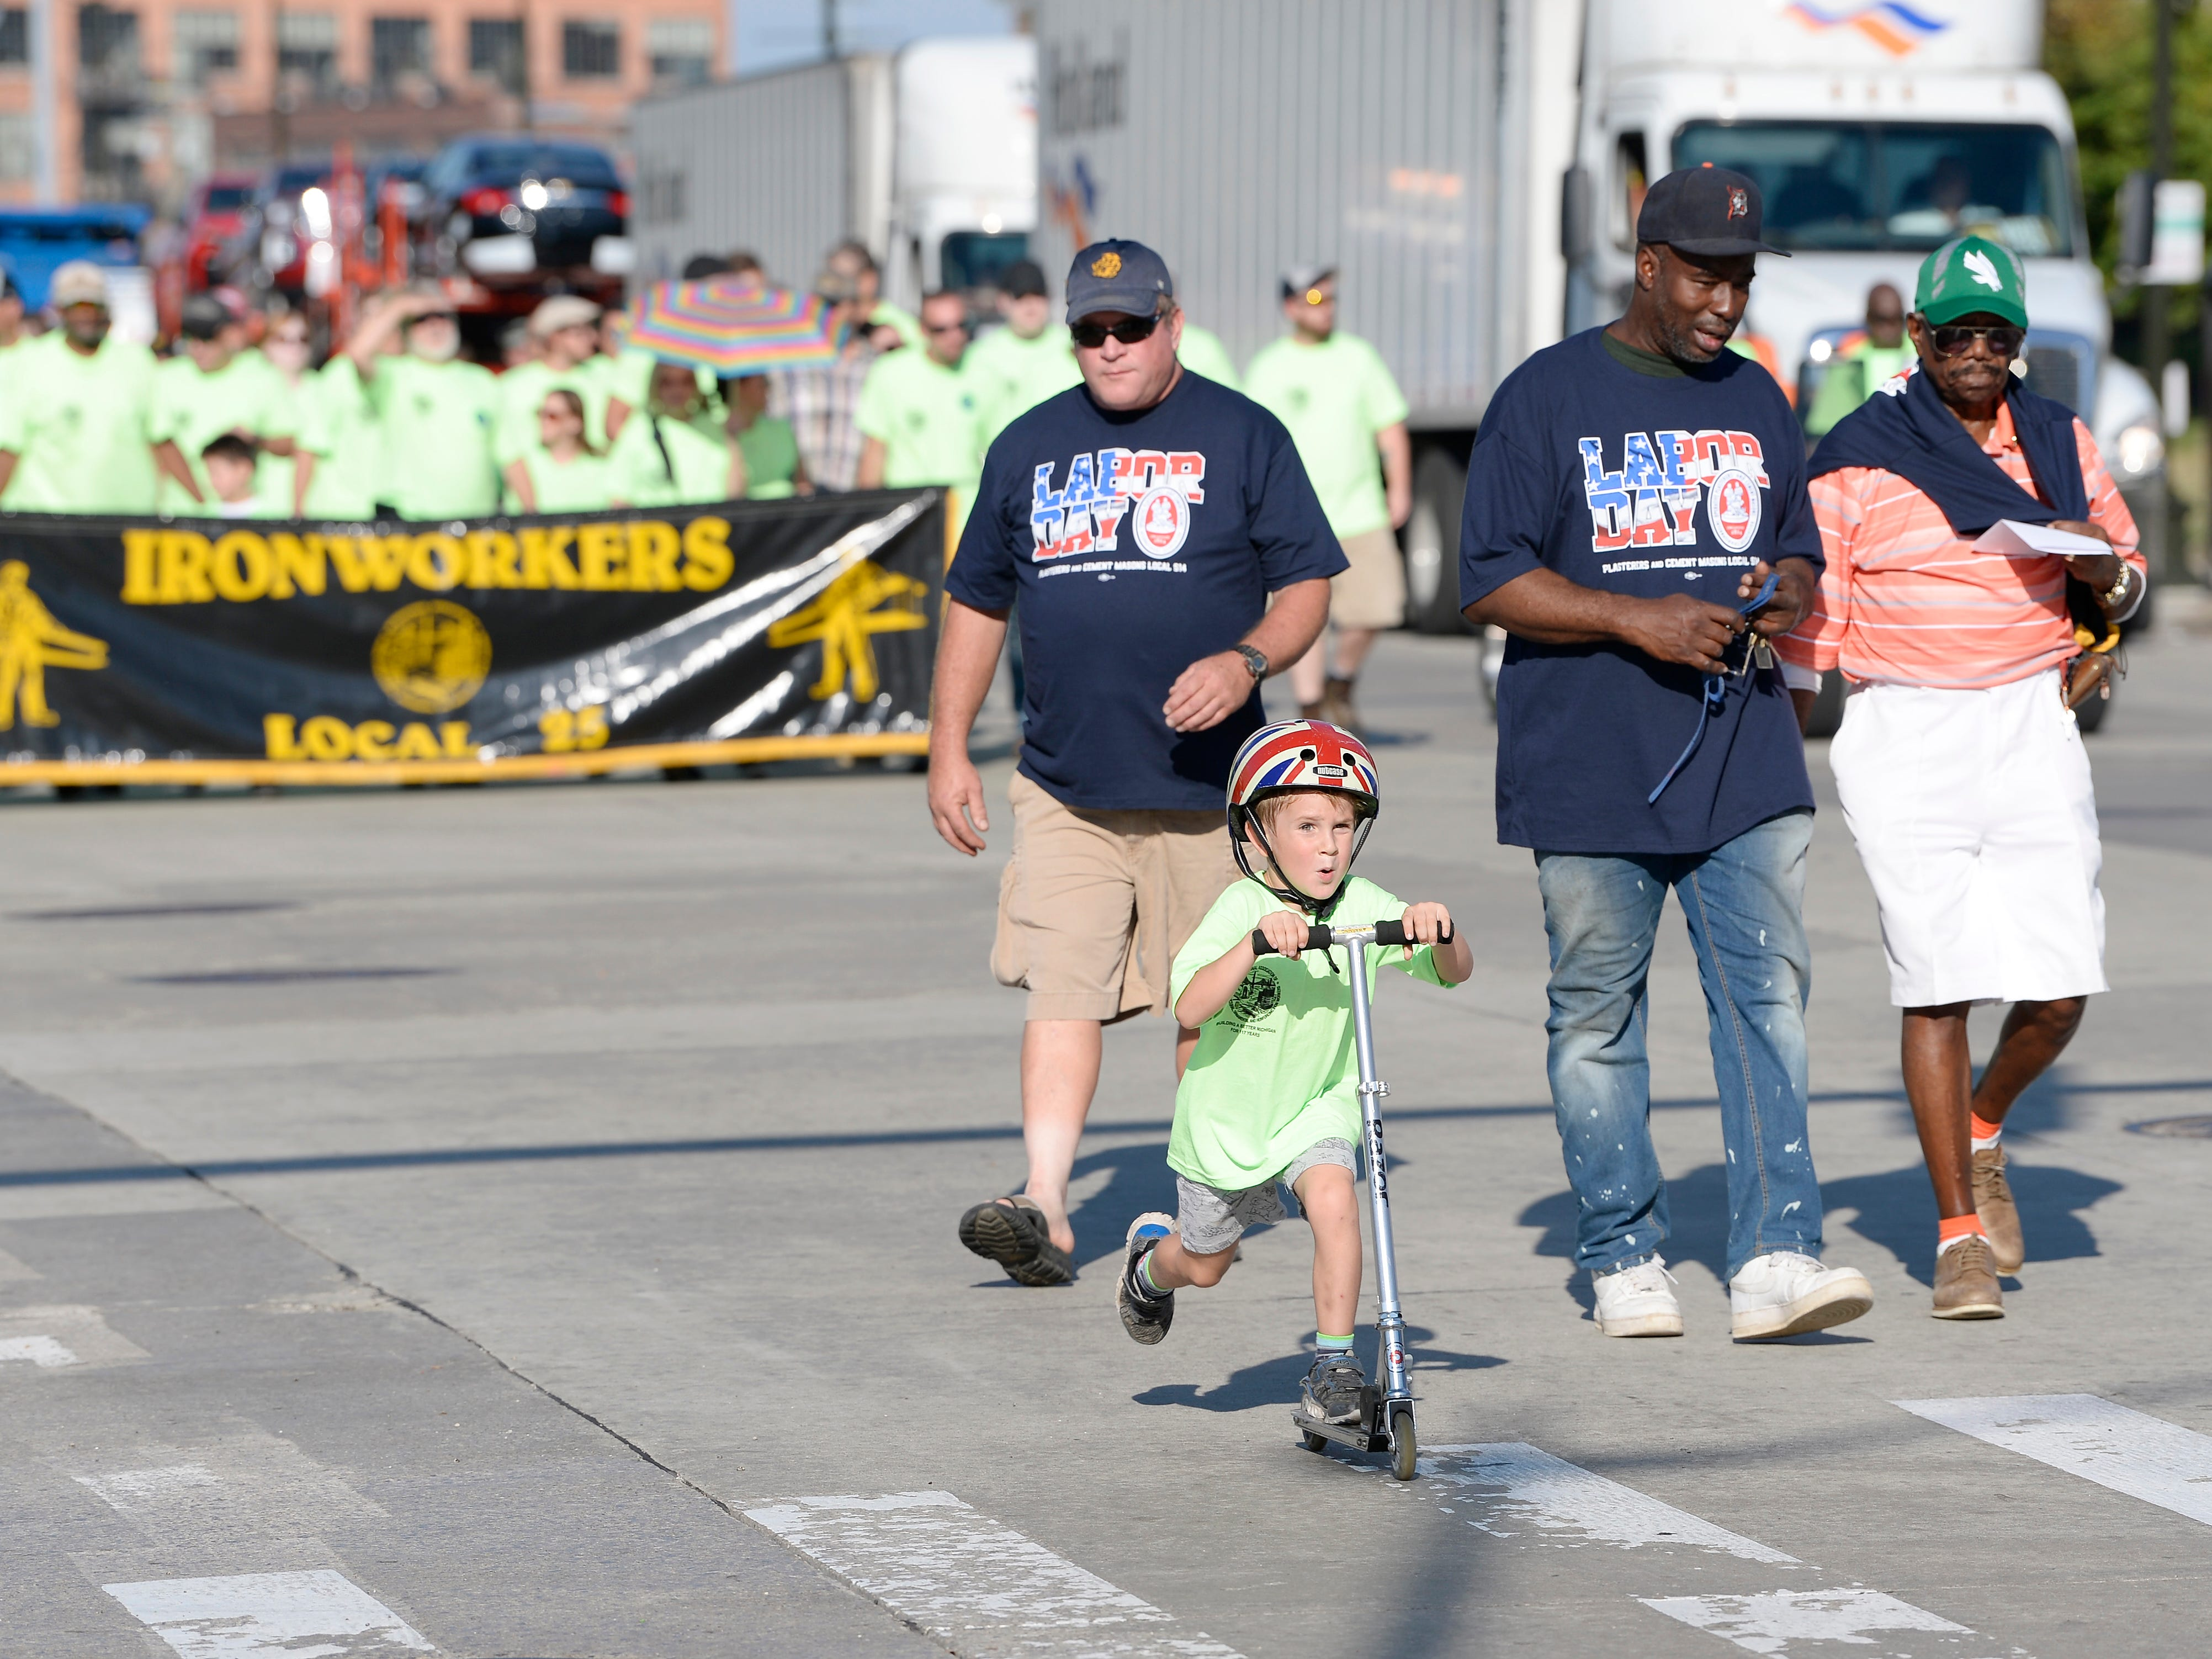 Jack Lobley, 5, of Detroit rides his scooter on the parade route.